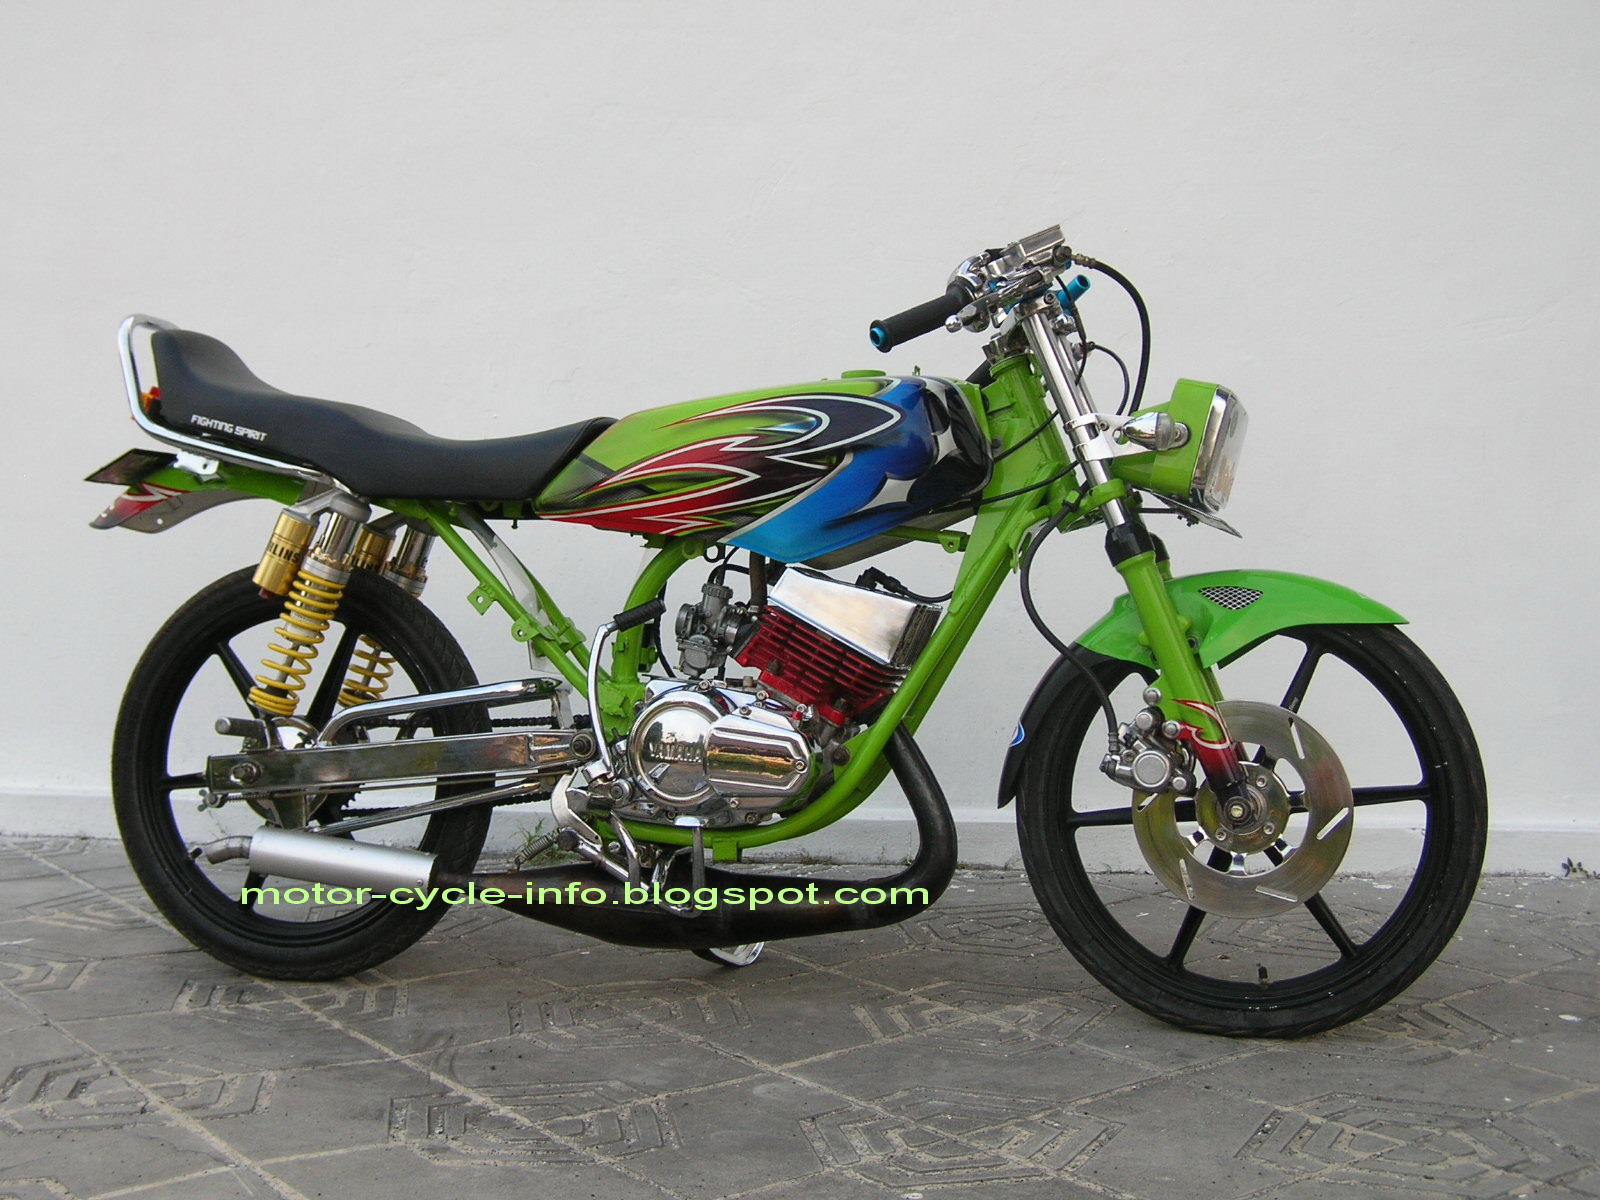 make this motor cycle more attractive ready for a contest motor event title=